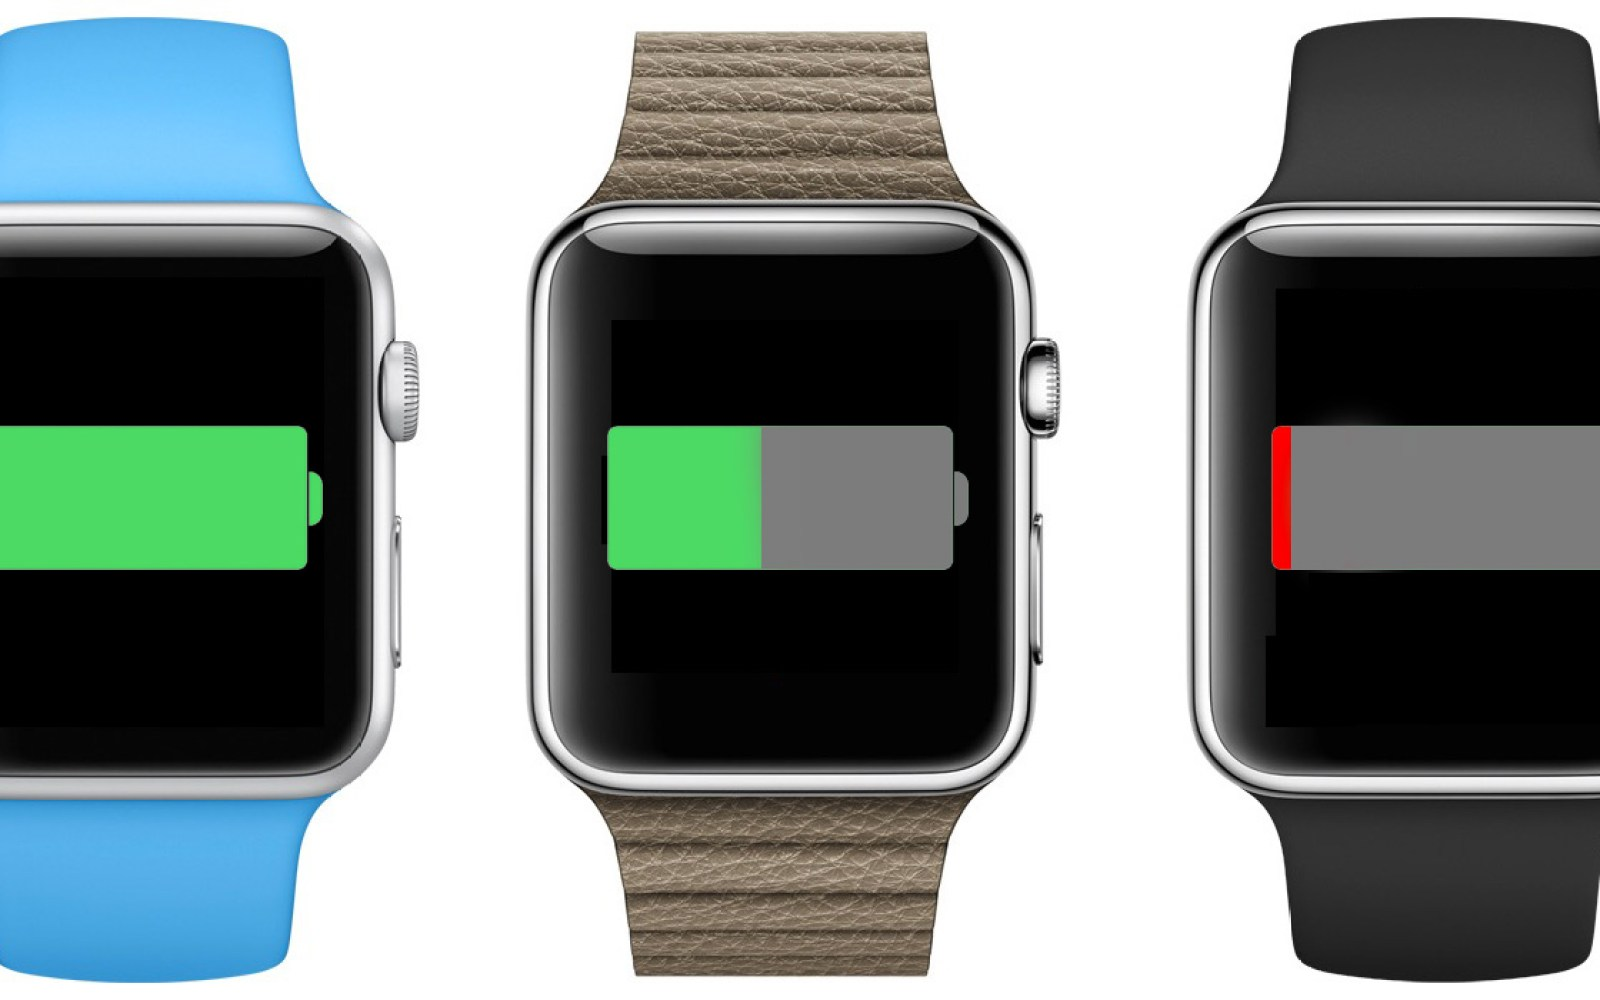 NYT: Apple Watch includes 'Power Reserve' mode, shows only the time but conserves battery life